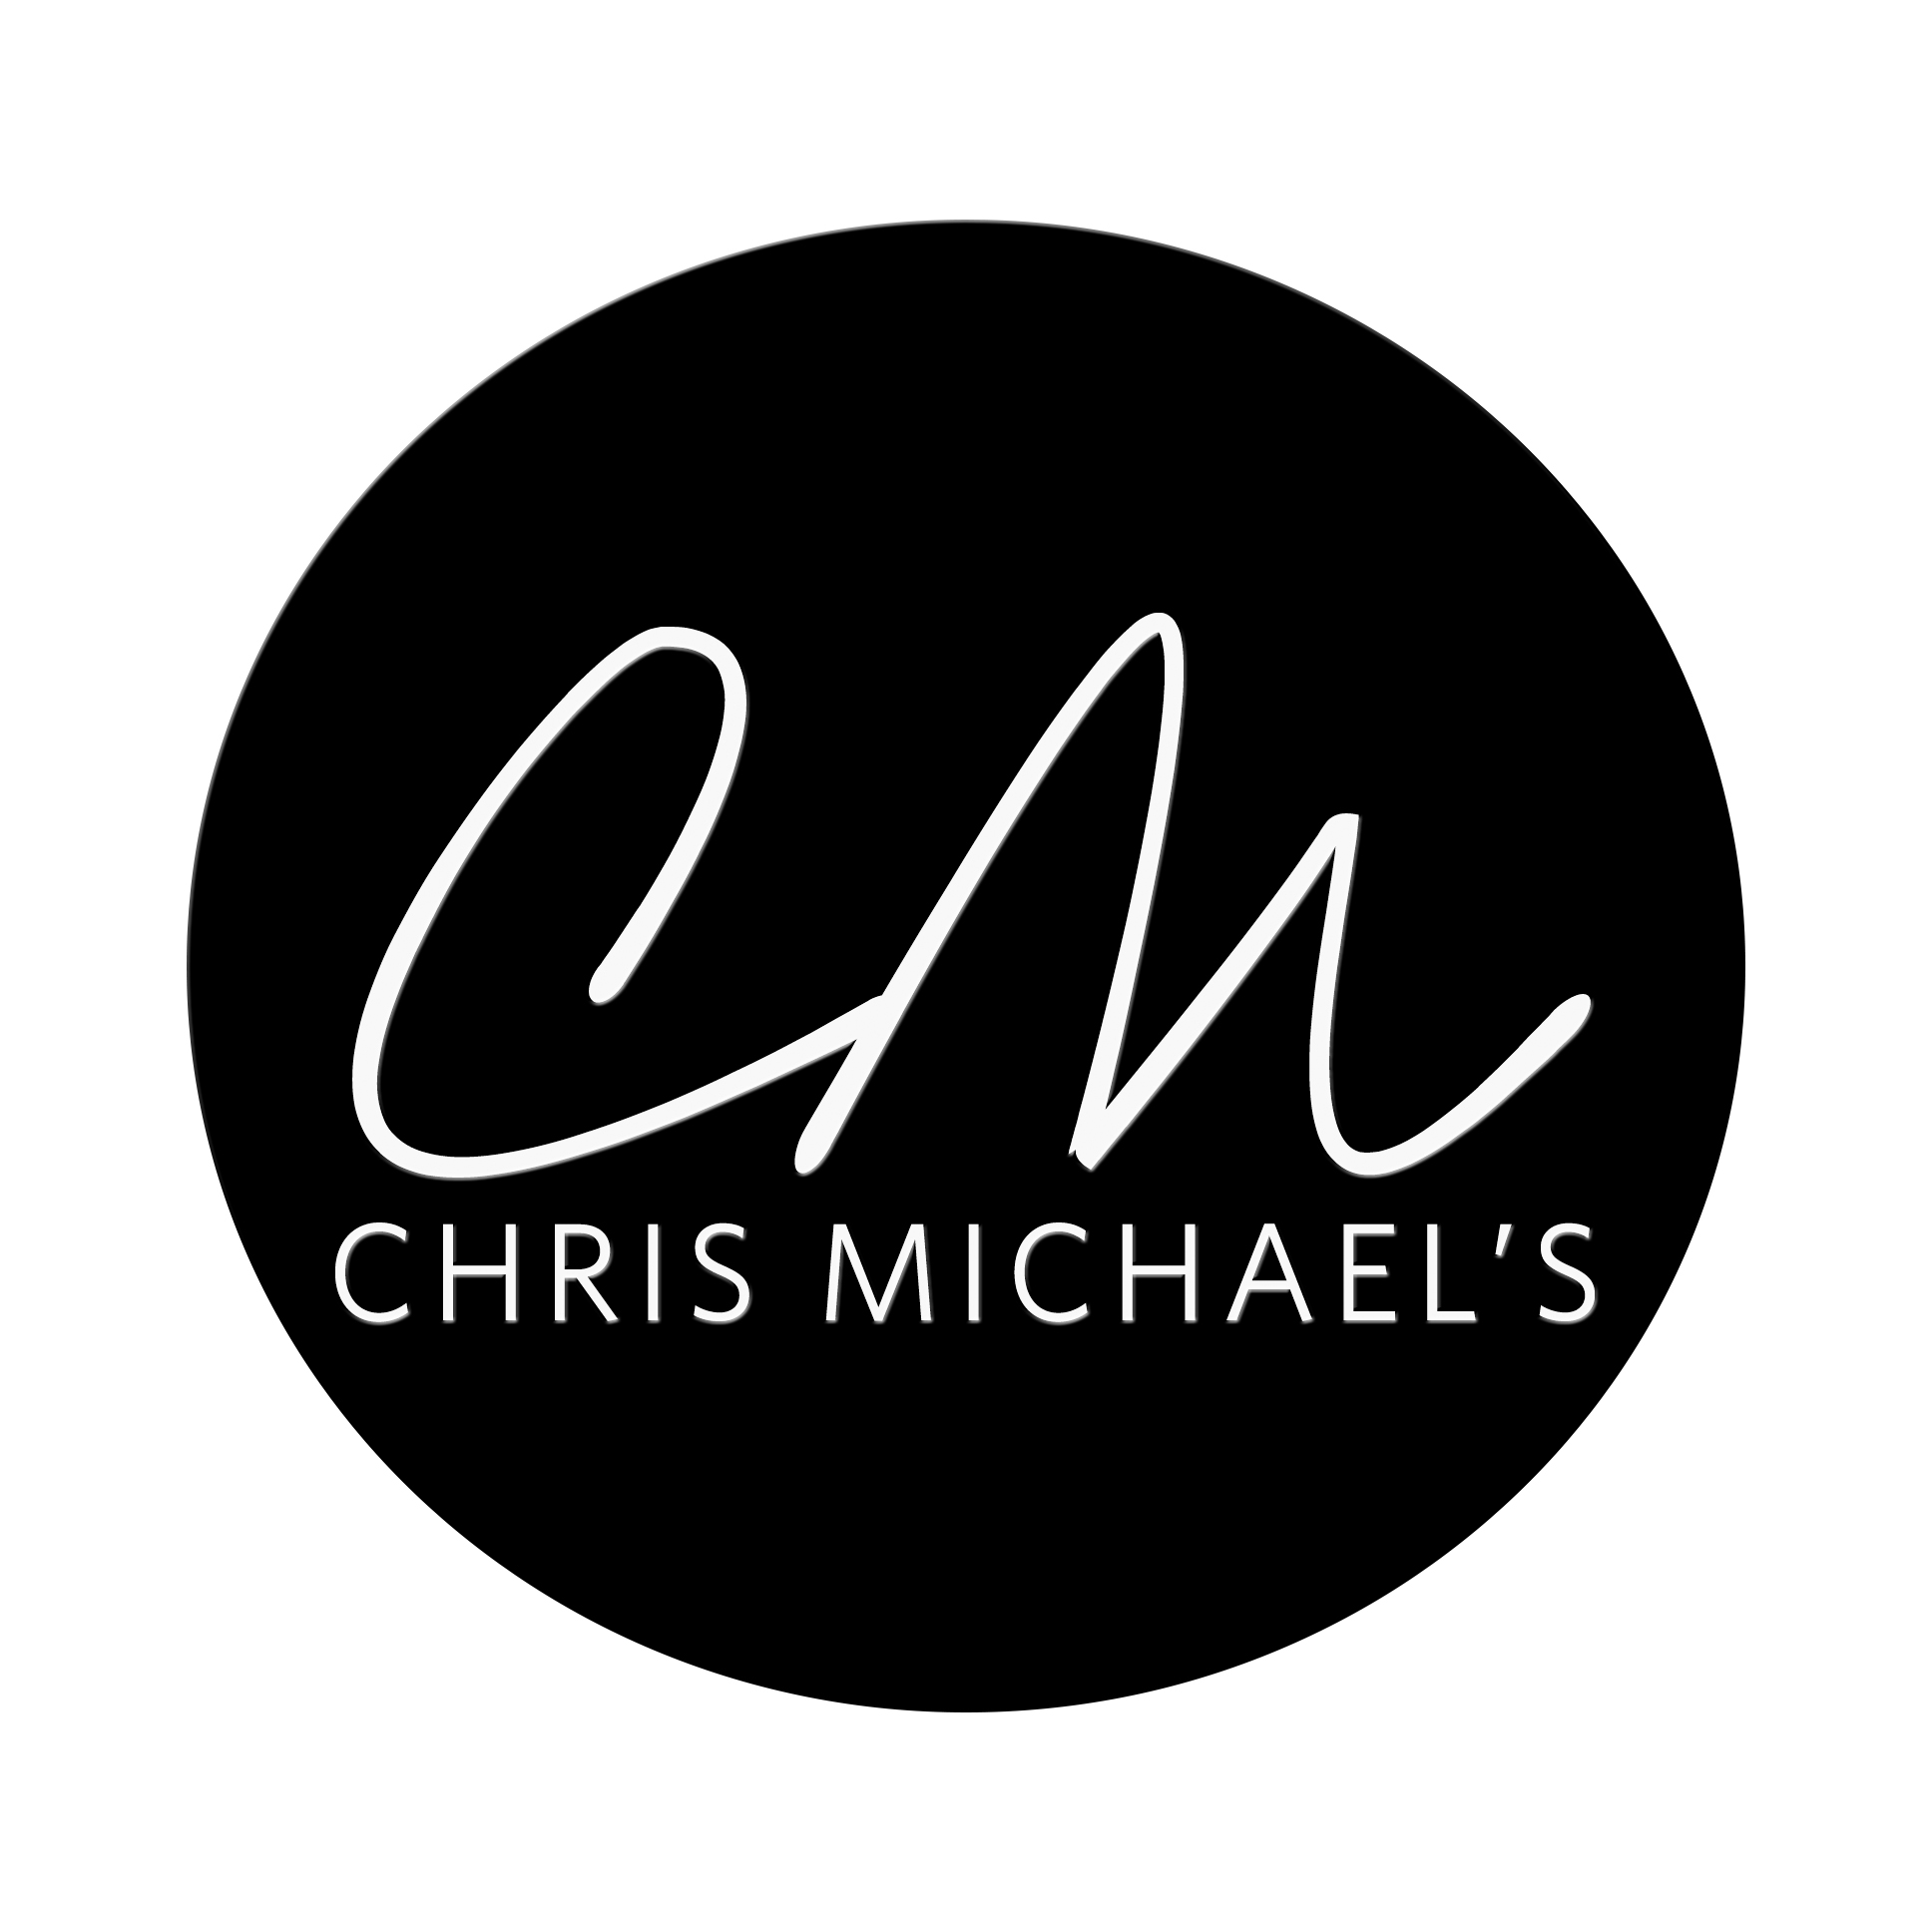 Chris Michaels Steakhouse and Nightclub